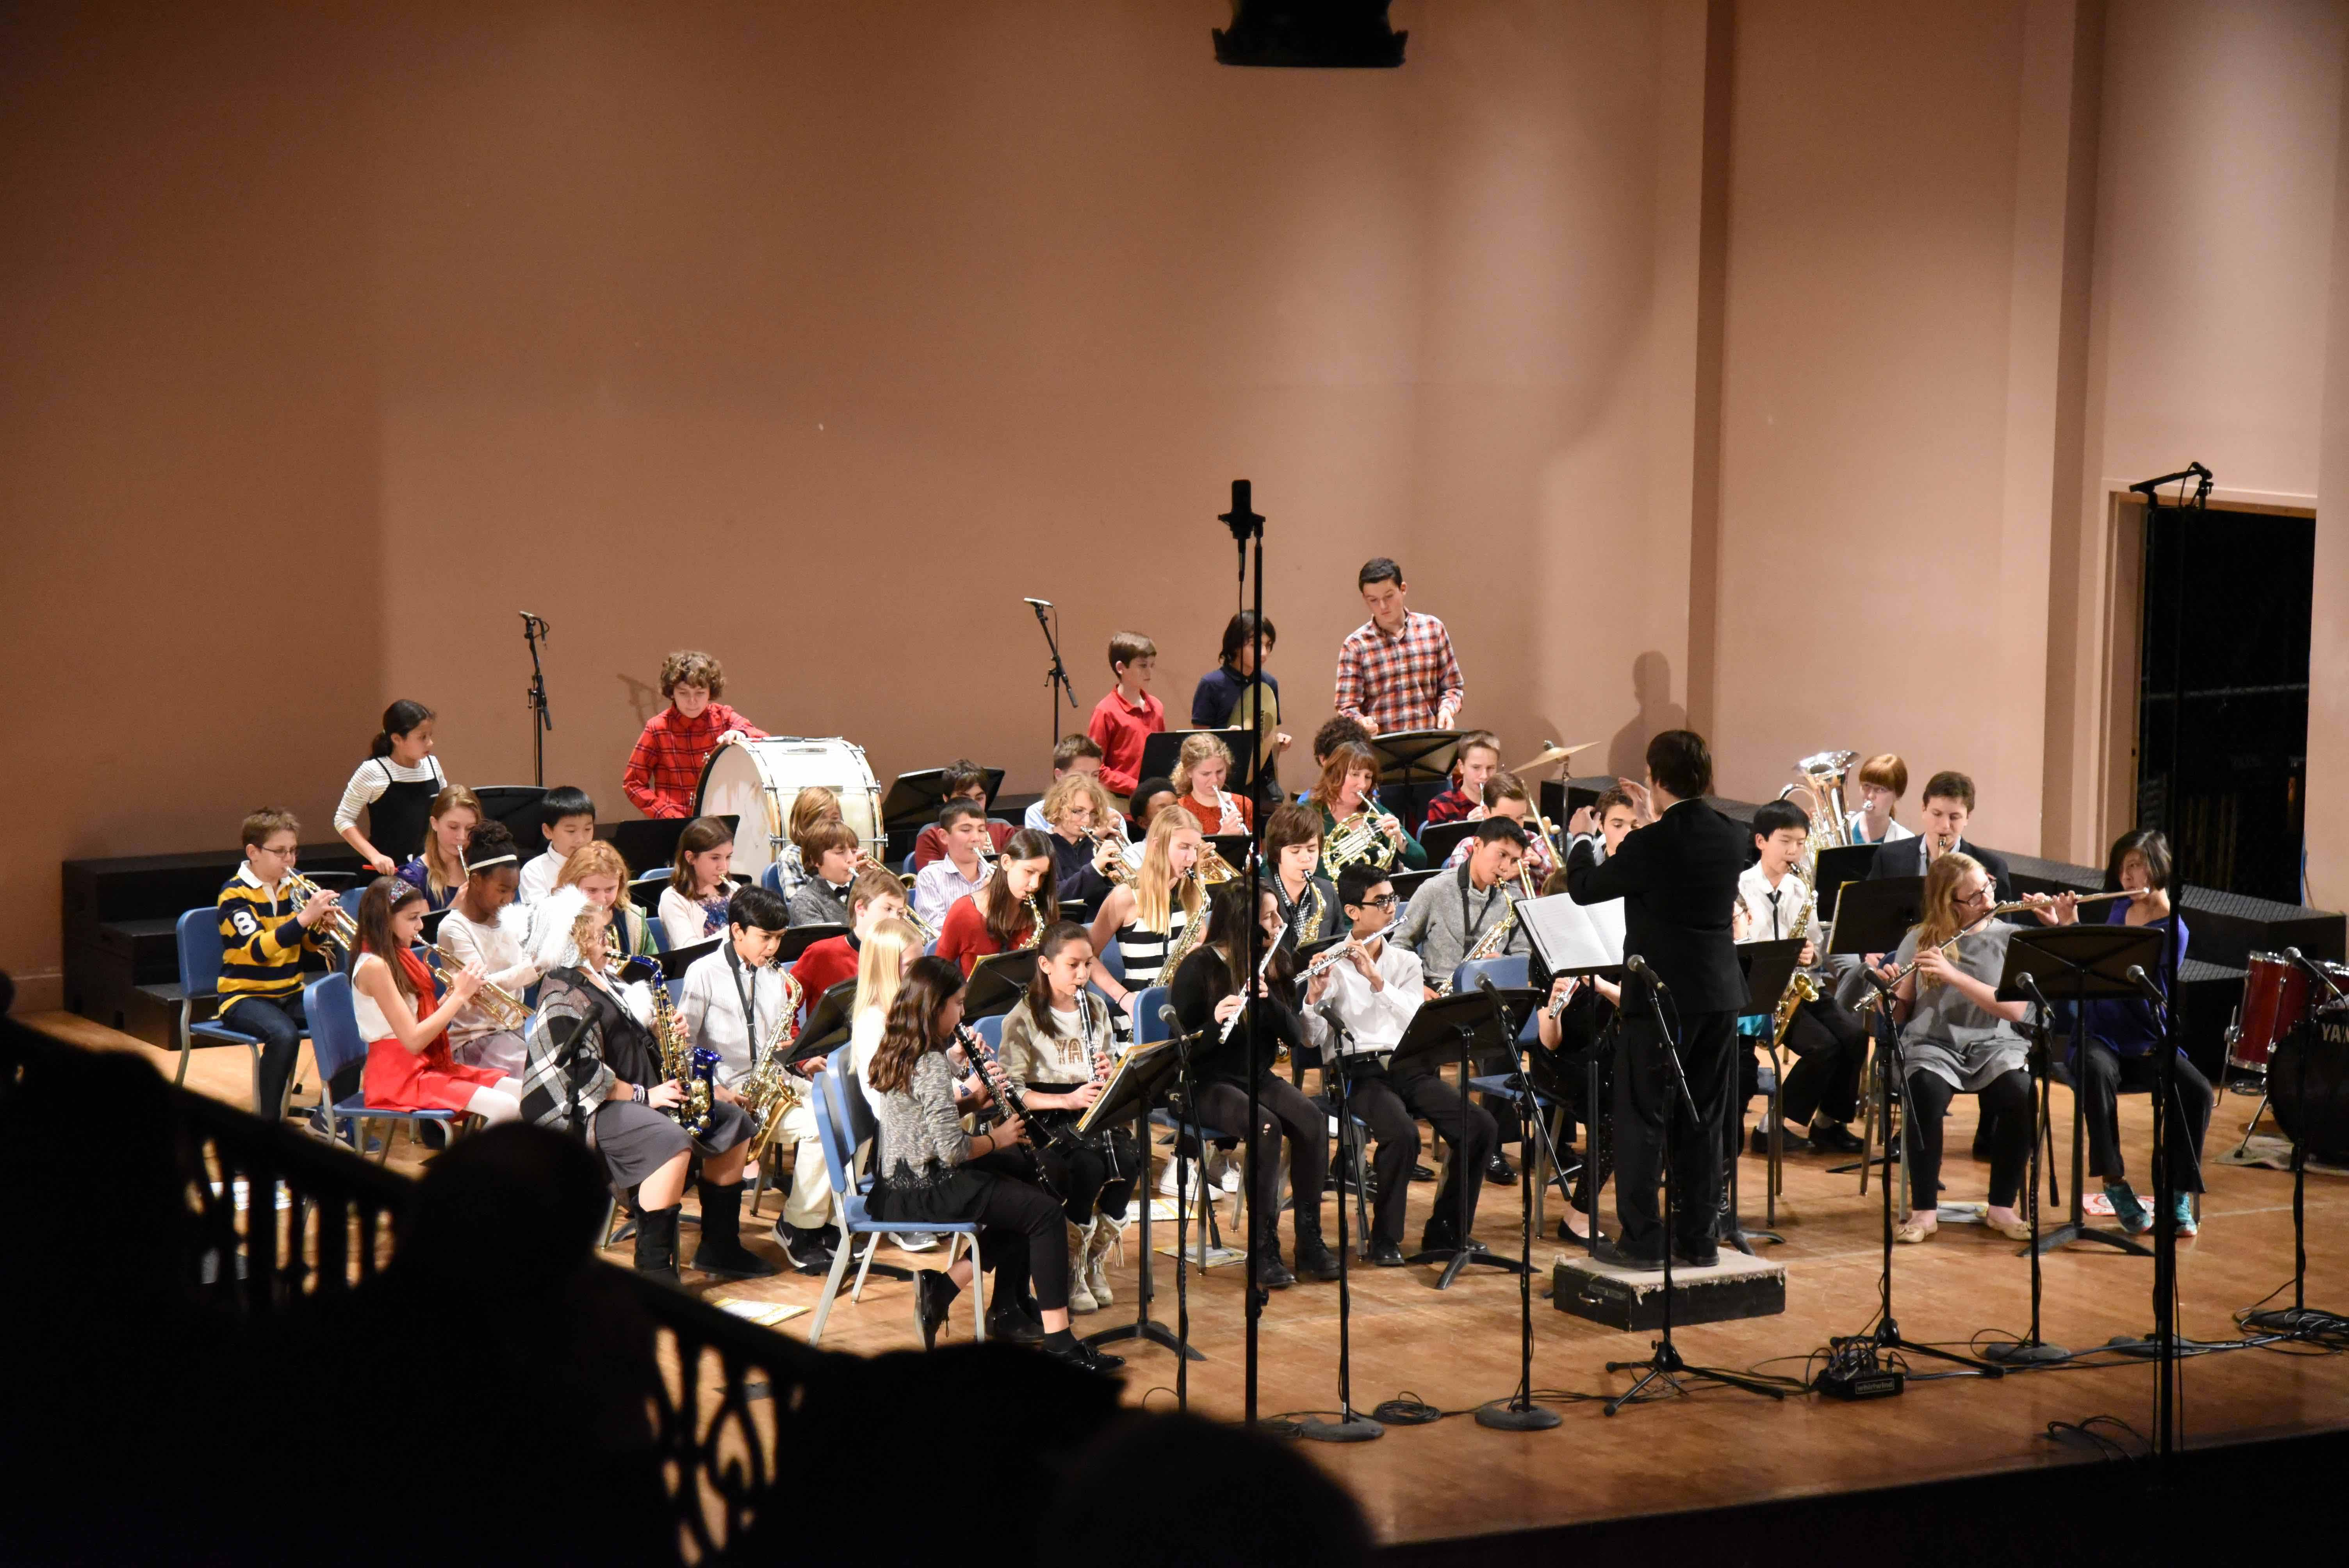 Music and Performing Arts | Falk Laboratory School